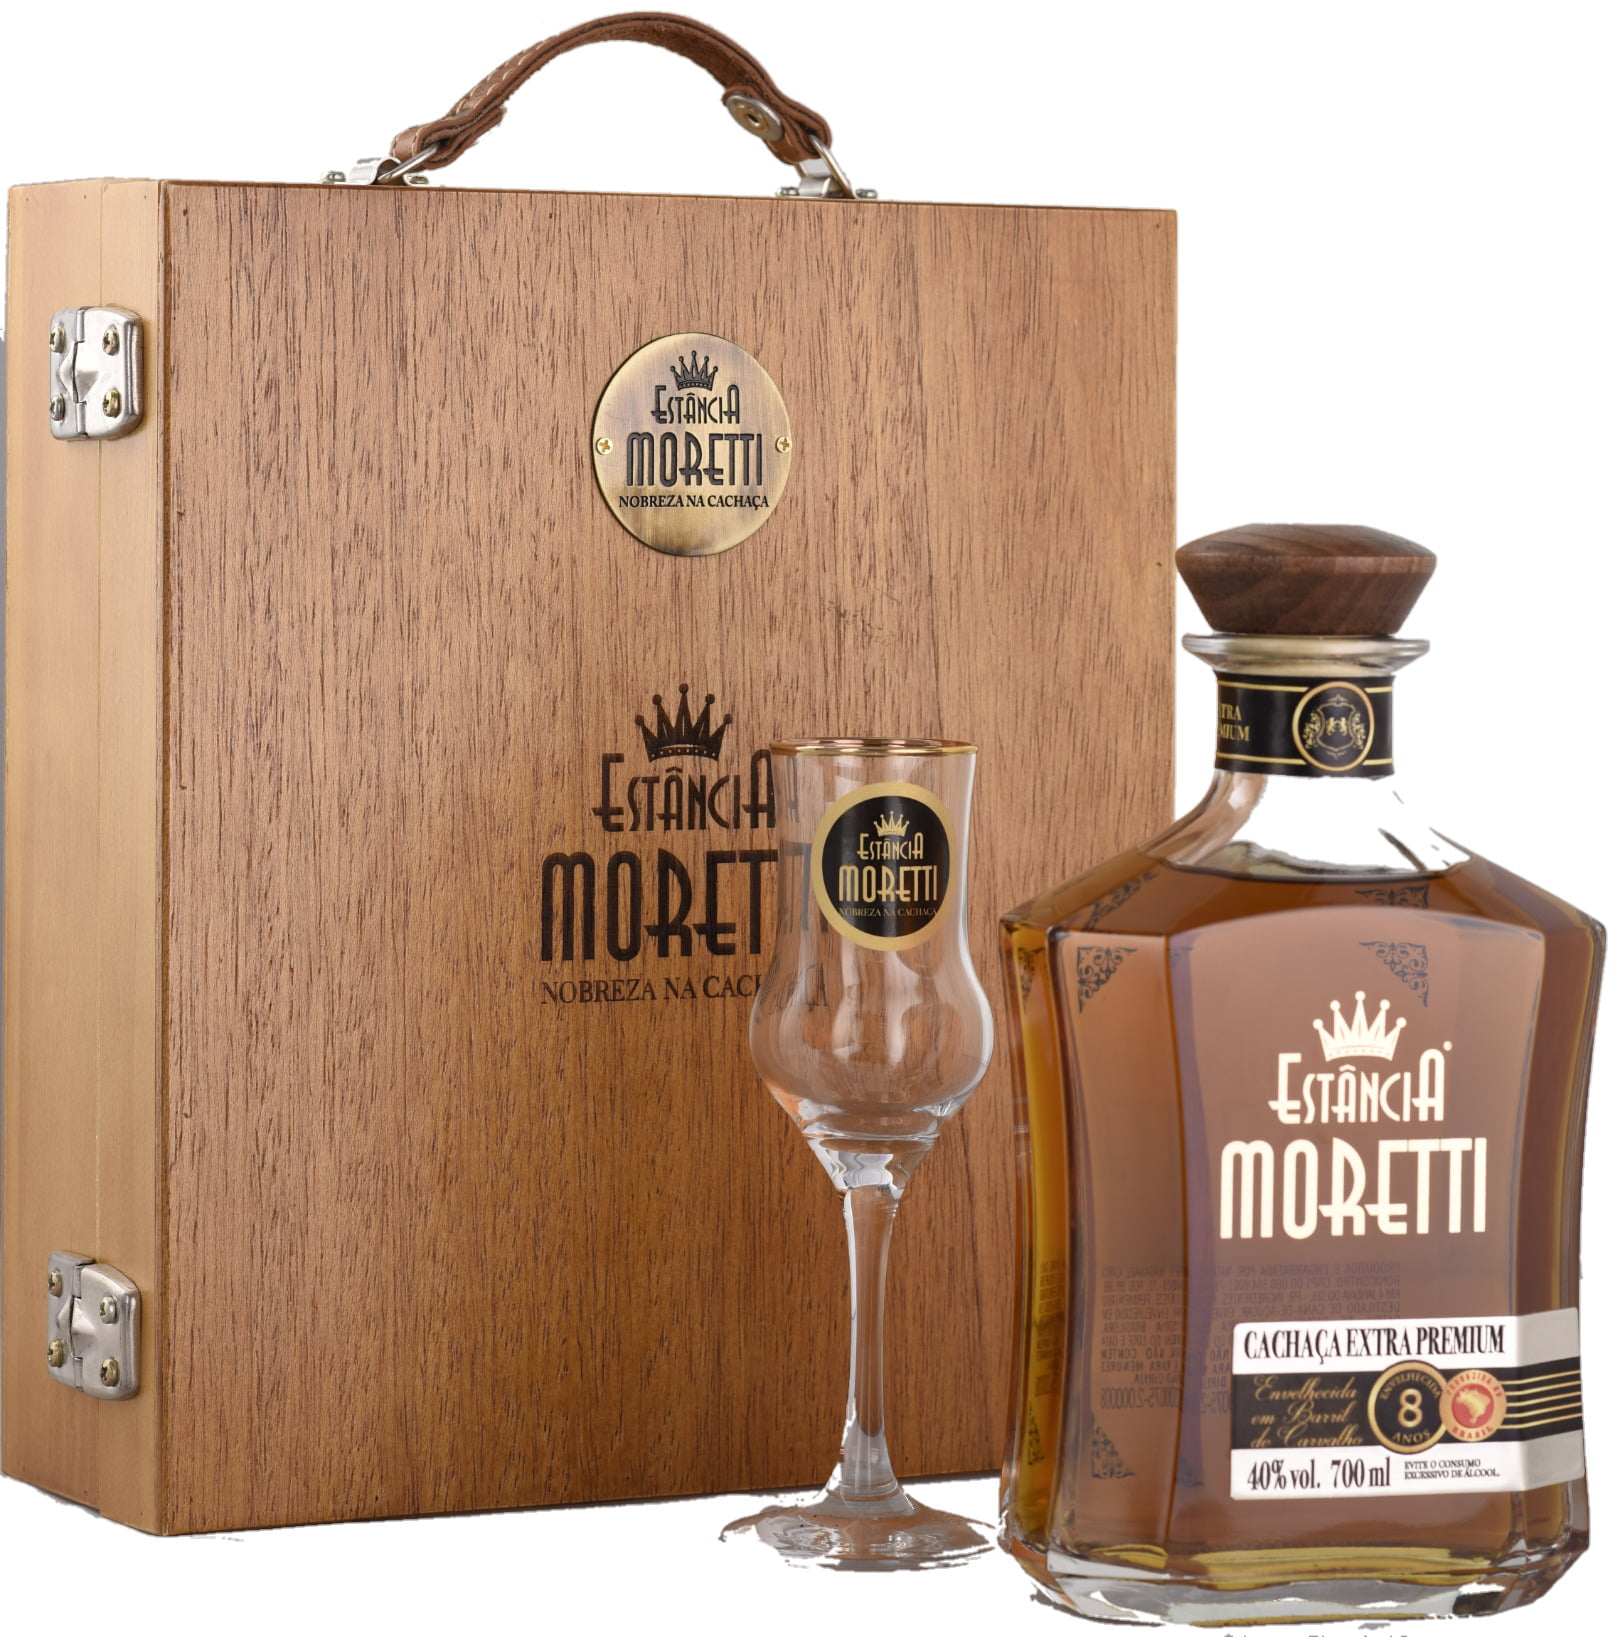 Kit Box Estância Moretti - 750 ml